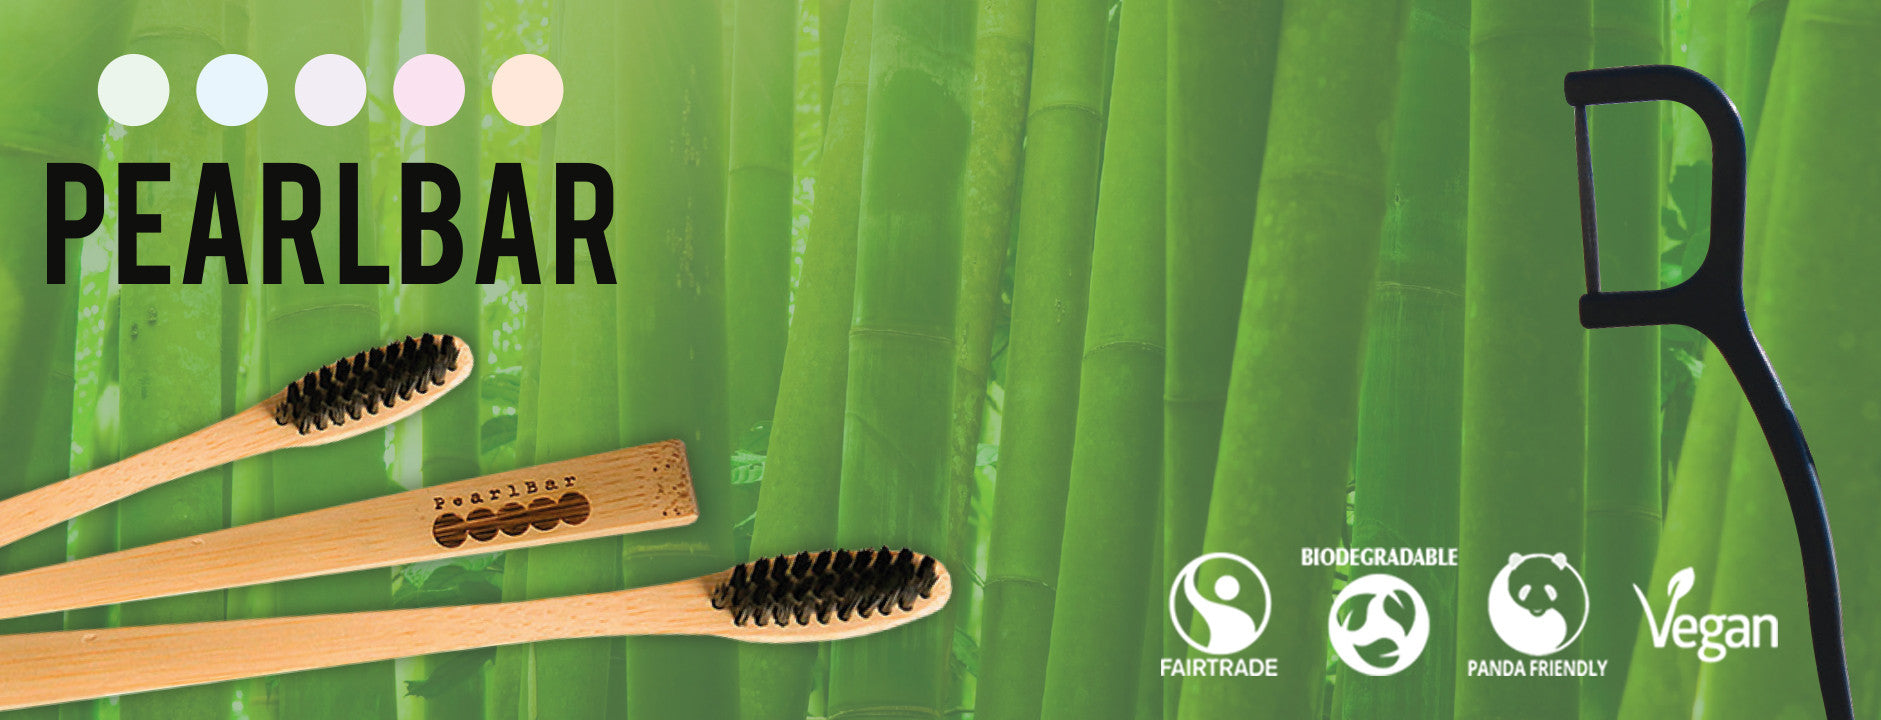 Pearlbar bamboo toothbrushes